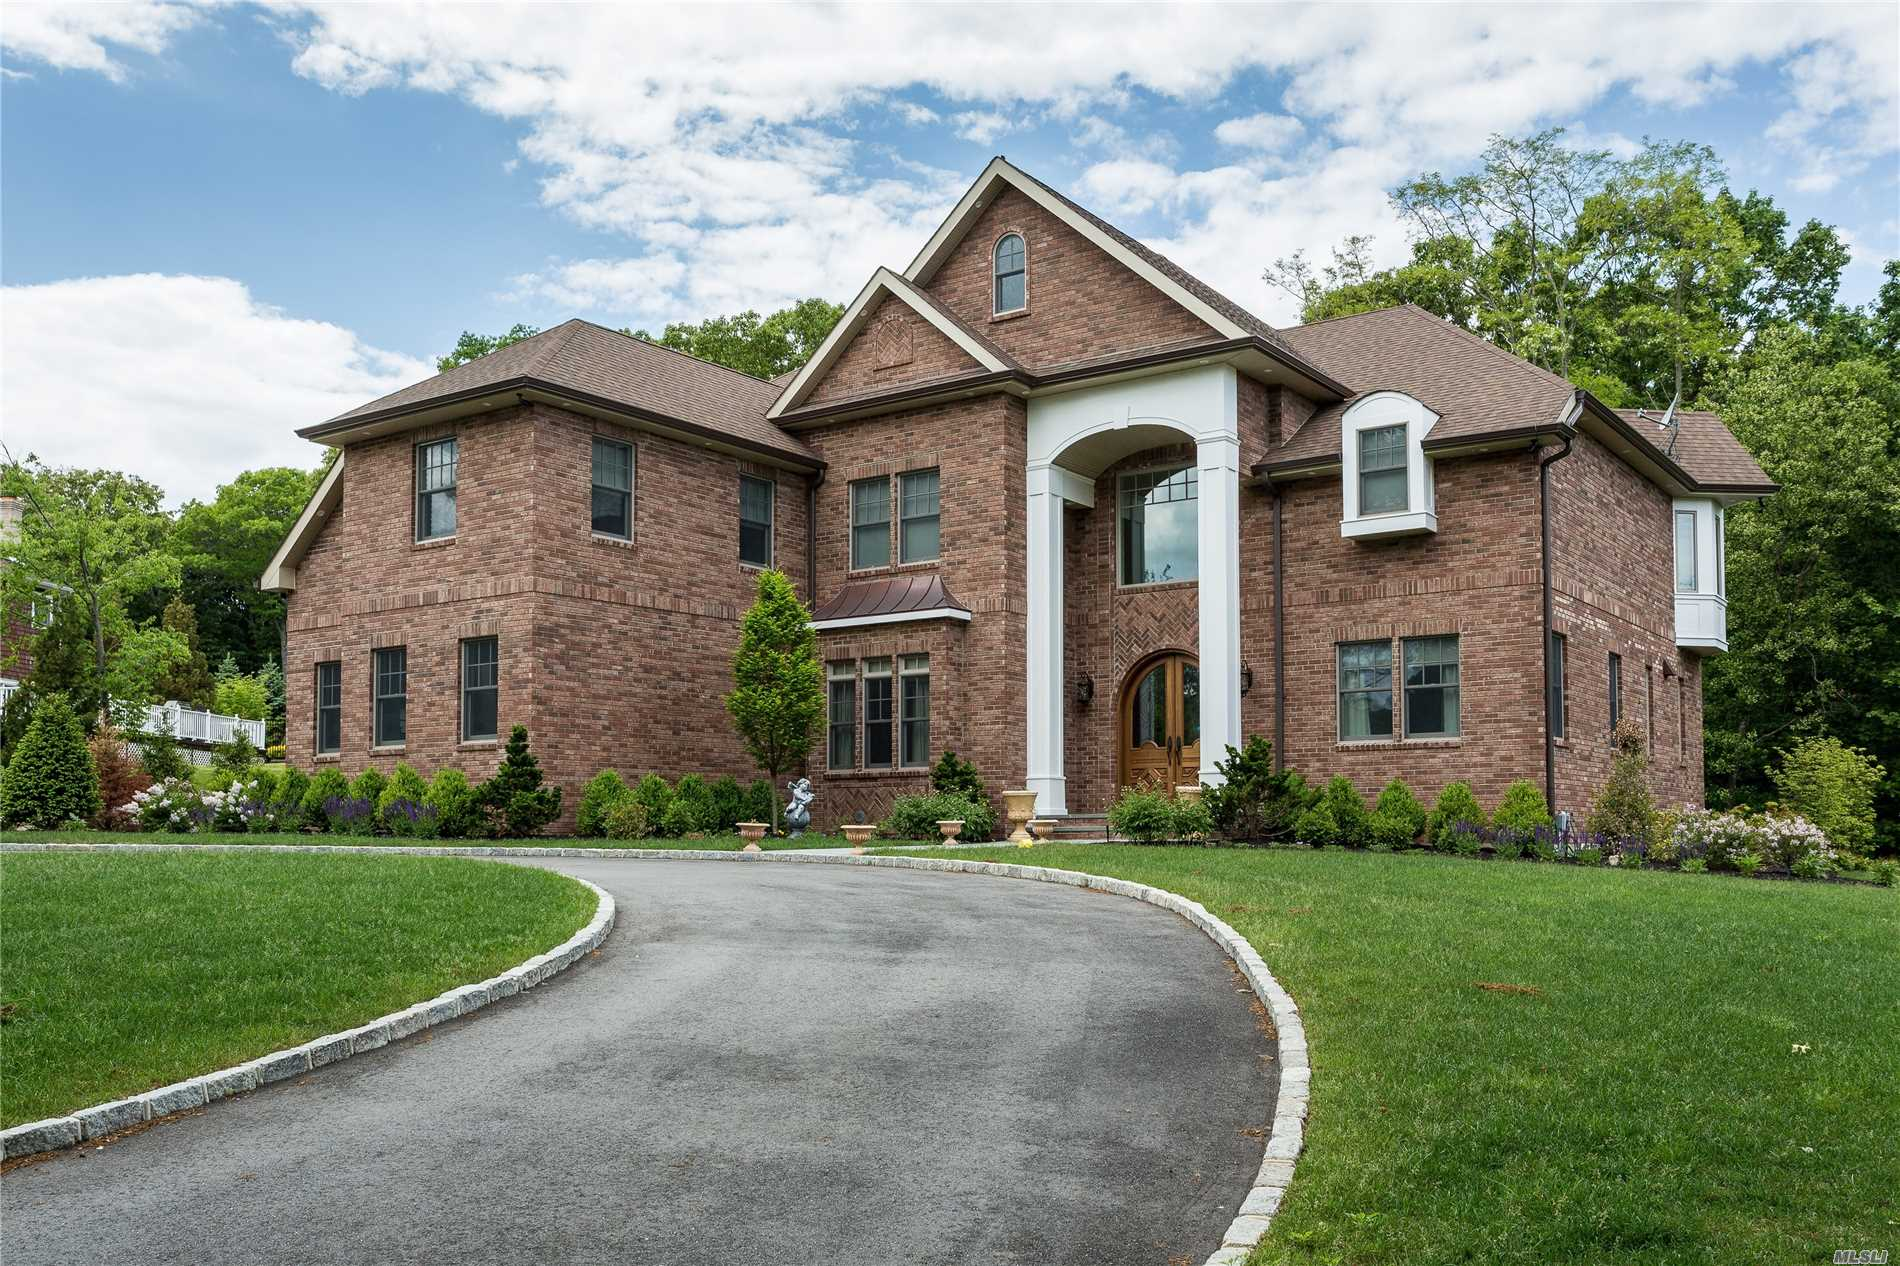 When Only The Best Will Do!Estate Setting 5000Sf Estate On 1.7 Acres-$175K Kitchen W/Amish Built Cabinets/High End Appliances/3 Dishwasher/1800Sf Walk Out Basement/Custom Walk In Closets/Radiant Heated Bathrooms/125K Birch Flooring And Solid Doors/Central Vac(In Floor) W/Air Filtration Syst/Instant Hot Water/Wired For Surround Sound Inside And Out/Video Surveillance Syst/Mahogany Deck & Balcony Off Master/Professional Landscape/$1.5 Million Invested.A Steal At This Price! Start Living The Dream!